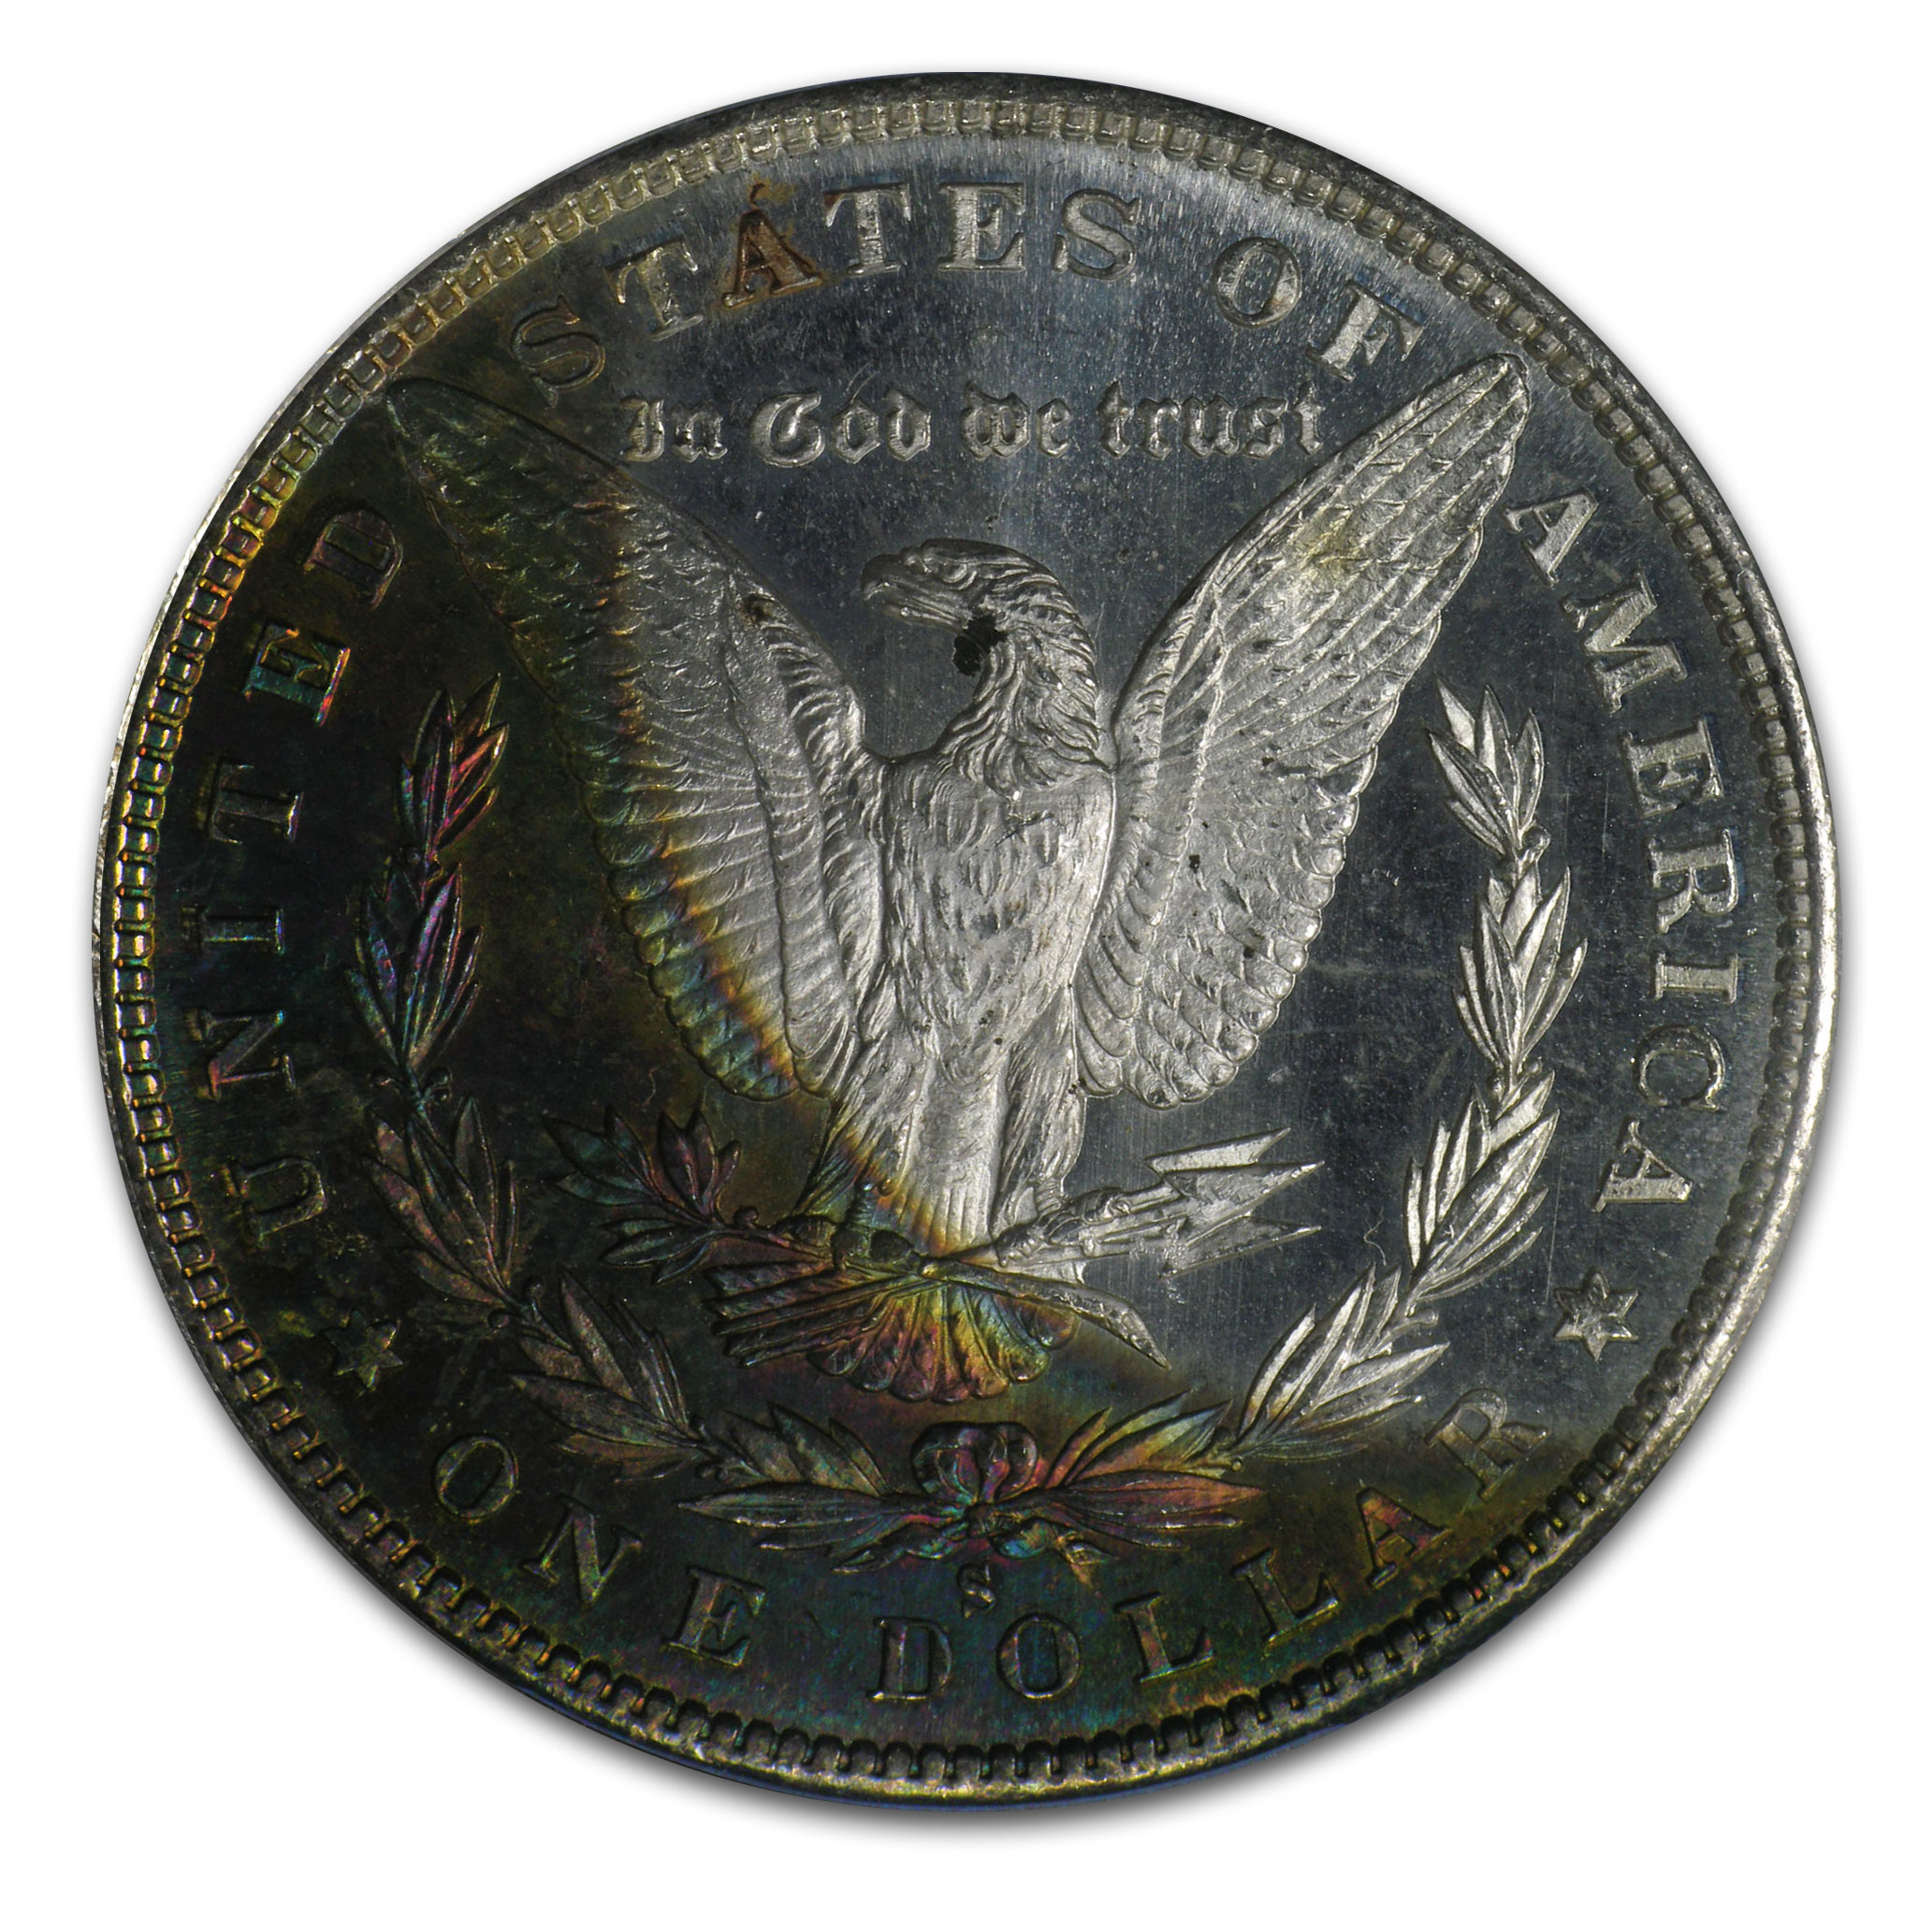 1880-S Morgan Dollar - MS-62 PL Proof Like PCGS Beautifully Toned